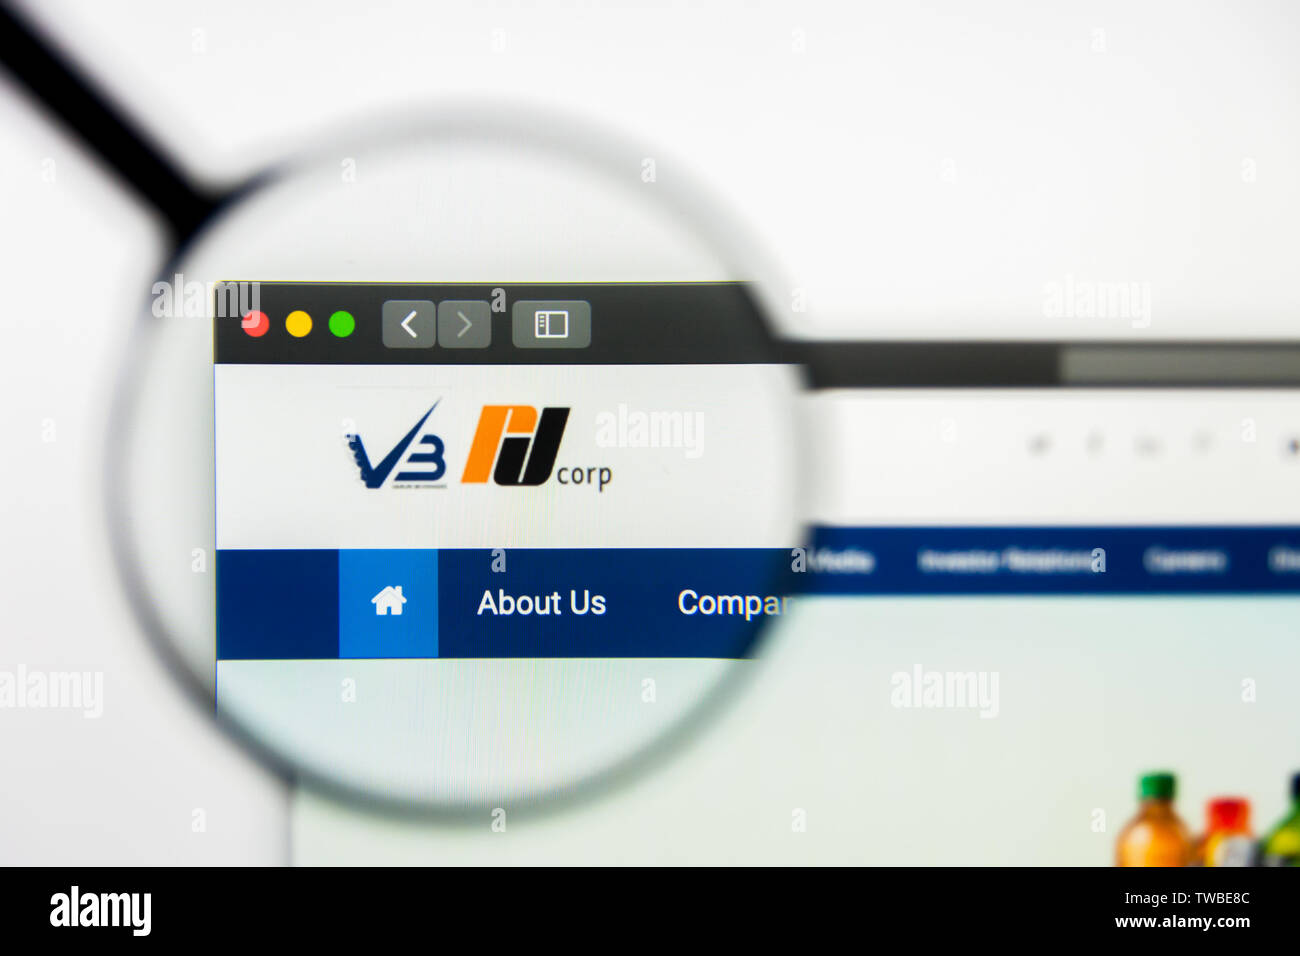 Varun Stock Photos & Varun Stock Images - Alamy